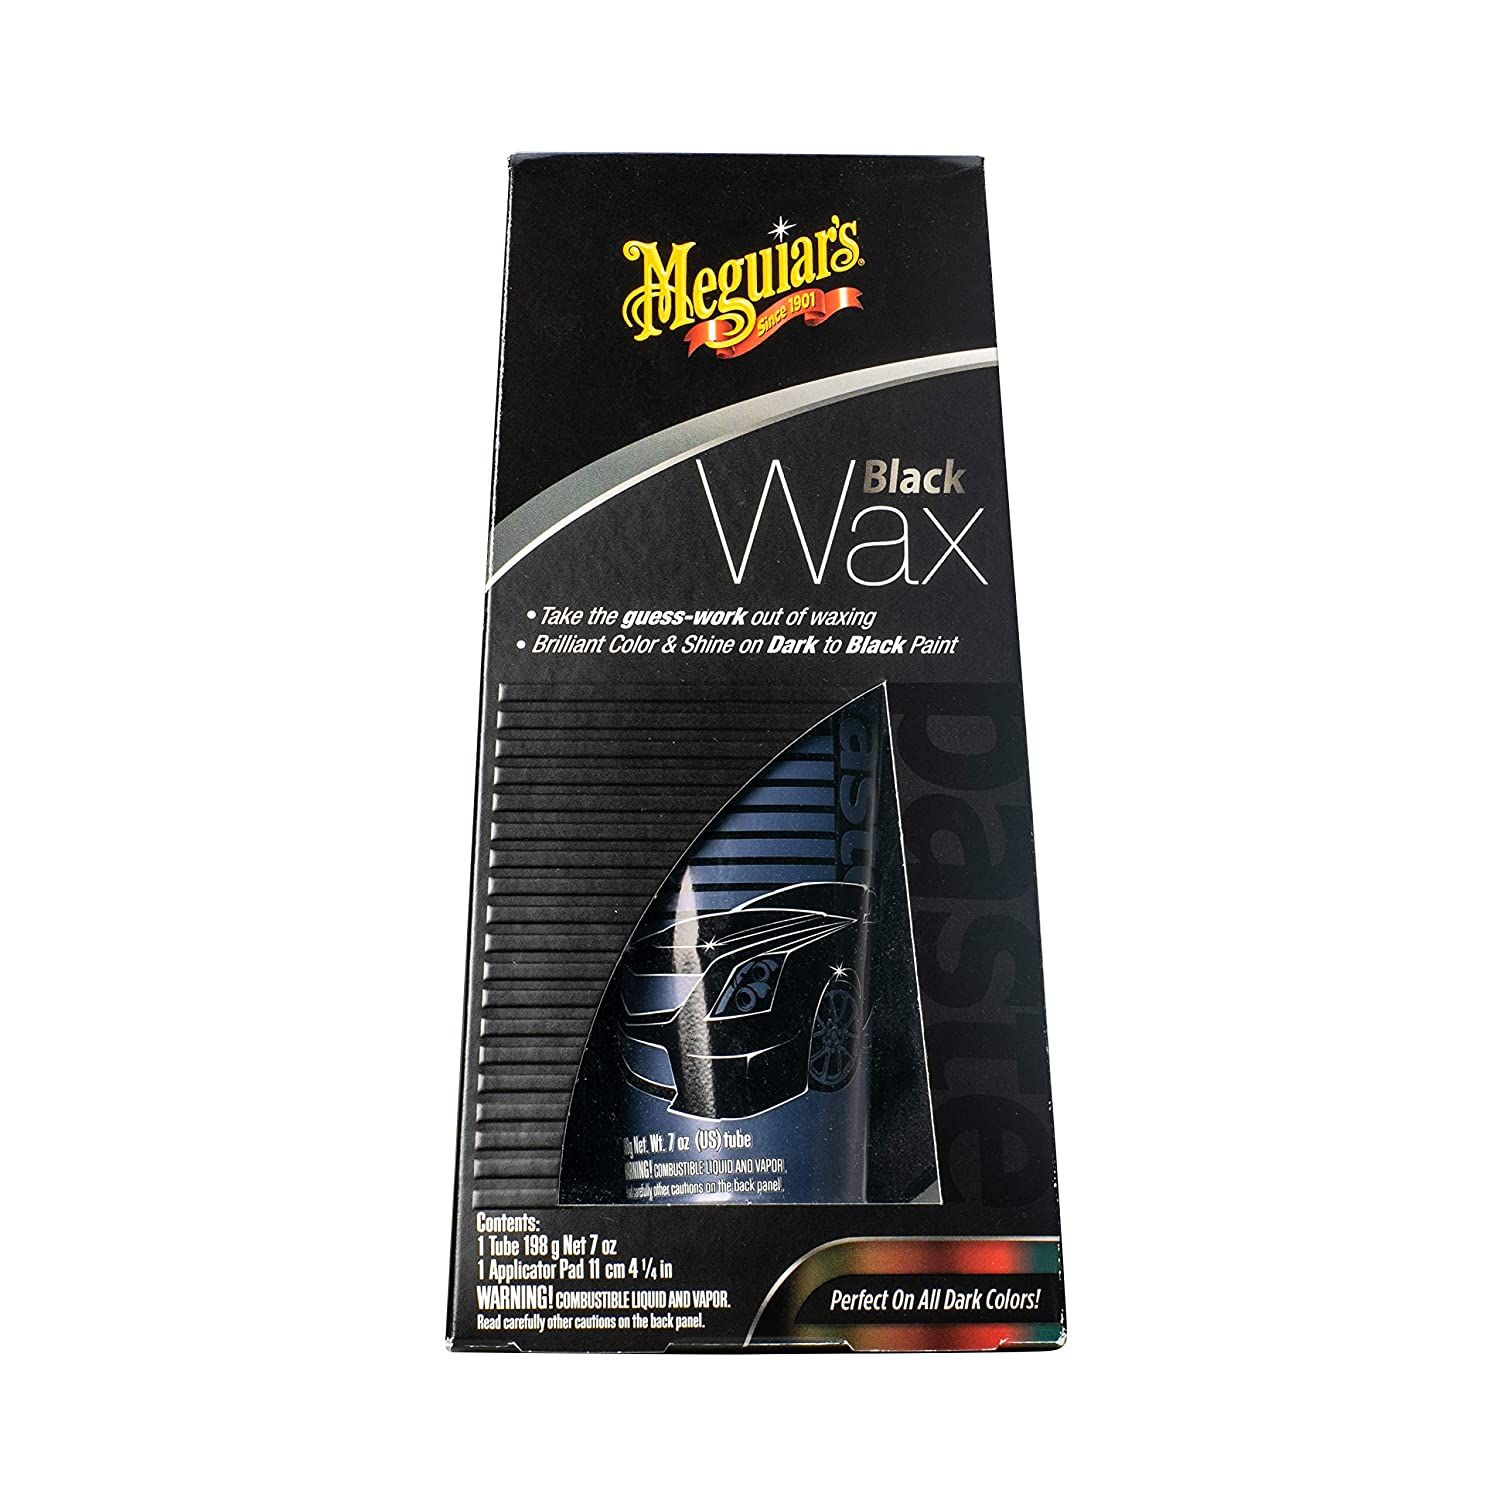 Meguiar's Black Wax}